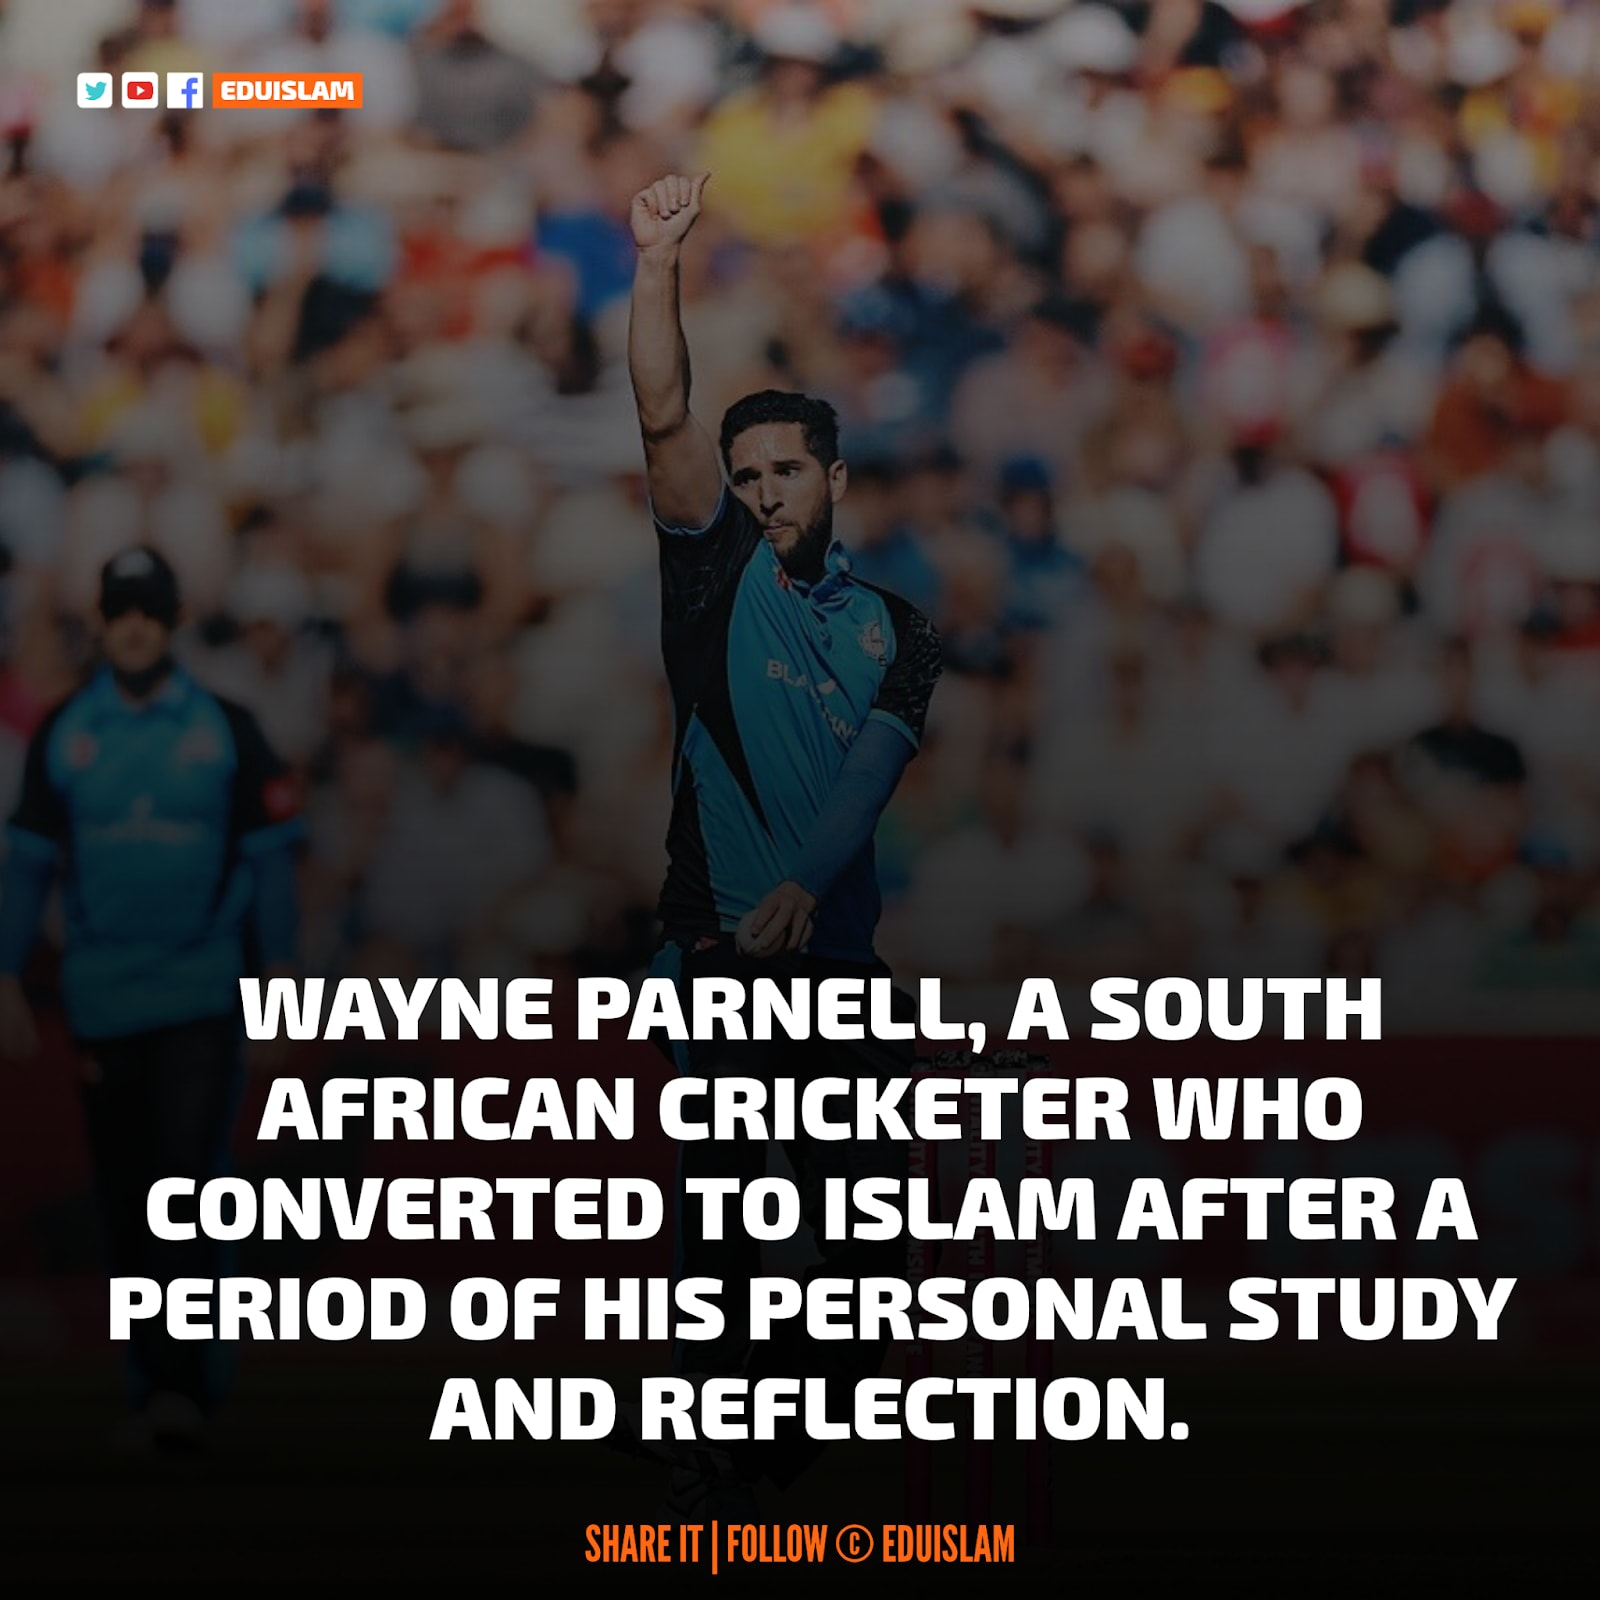 Wayne Parnell, cricketer who converted to Islam, Cricketer who became Muslim